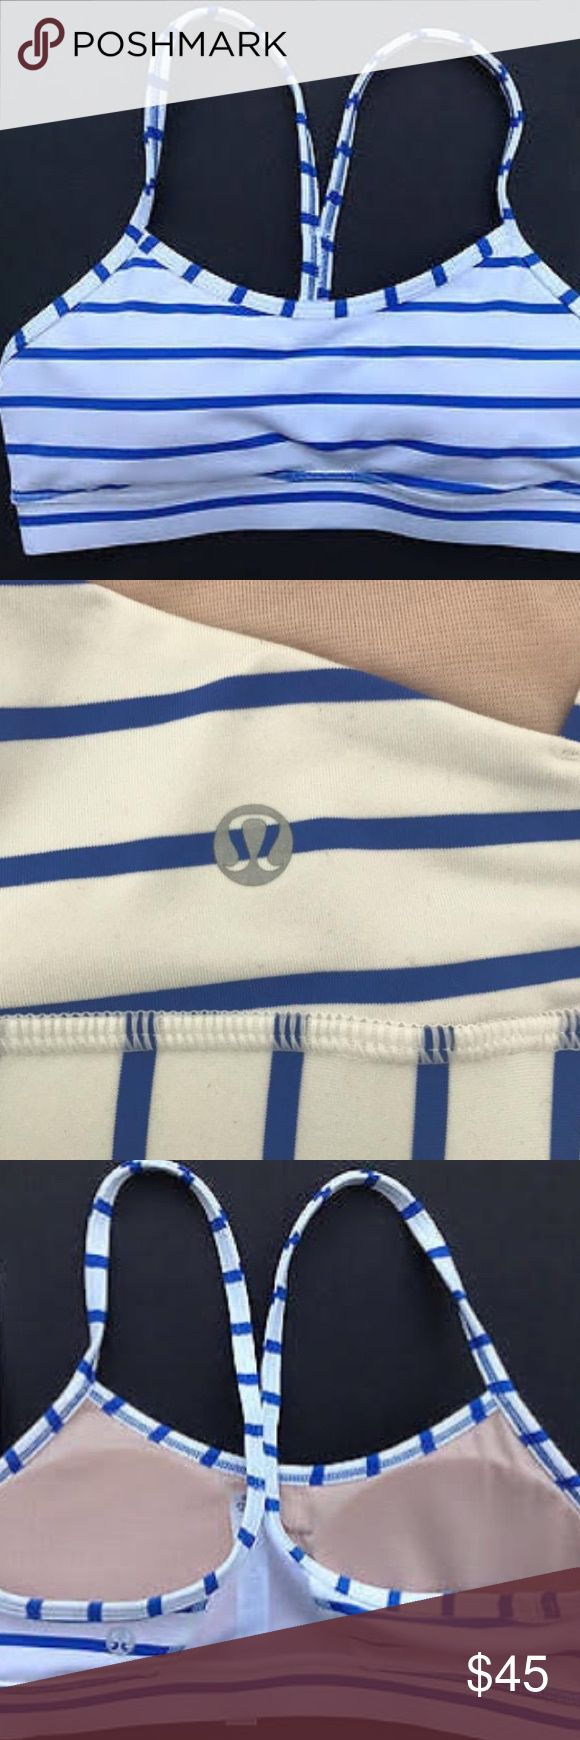 LULULEMON SPORTS BRA Sports bra. Lululemon! Blue and white stripes. Size 4. Fits like a small. In great shape, only worn a couple times. lululemon athletica Intimates & Sleepwear Bras